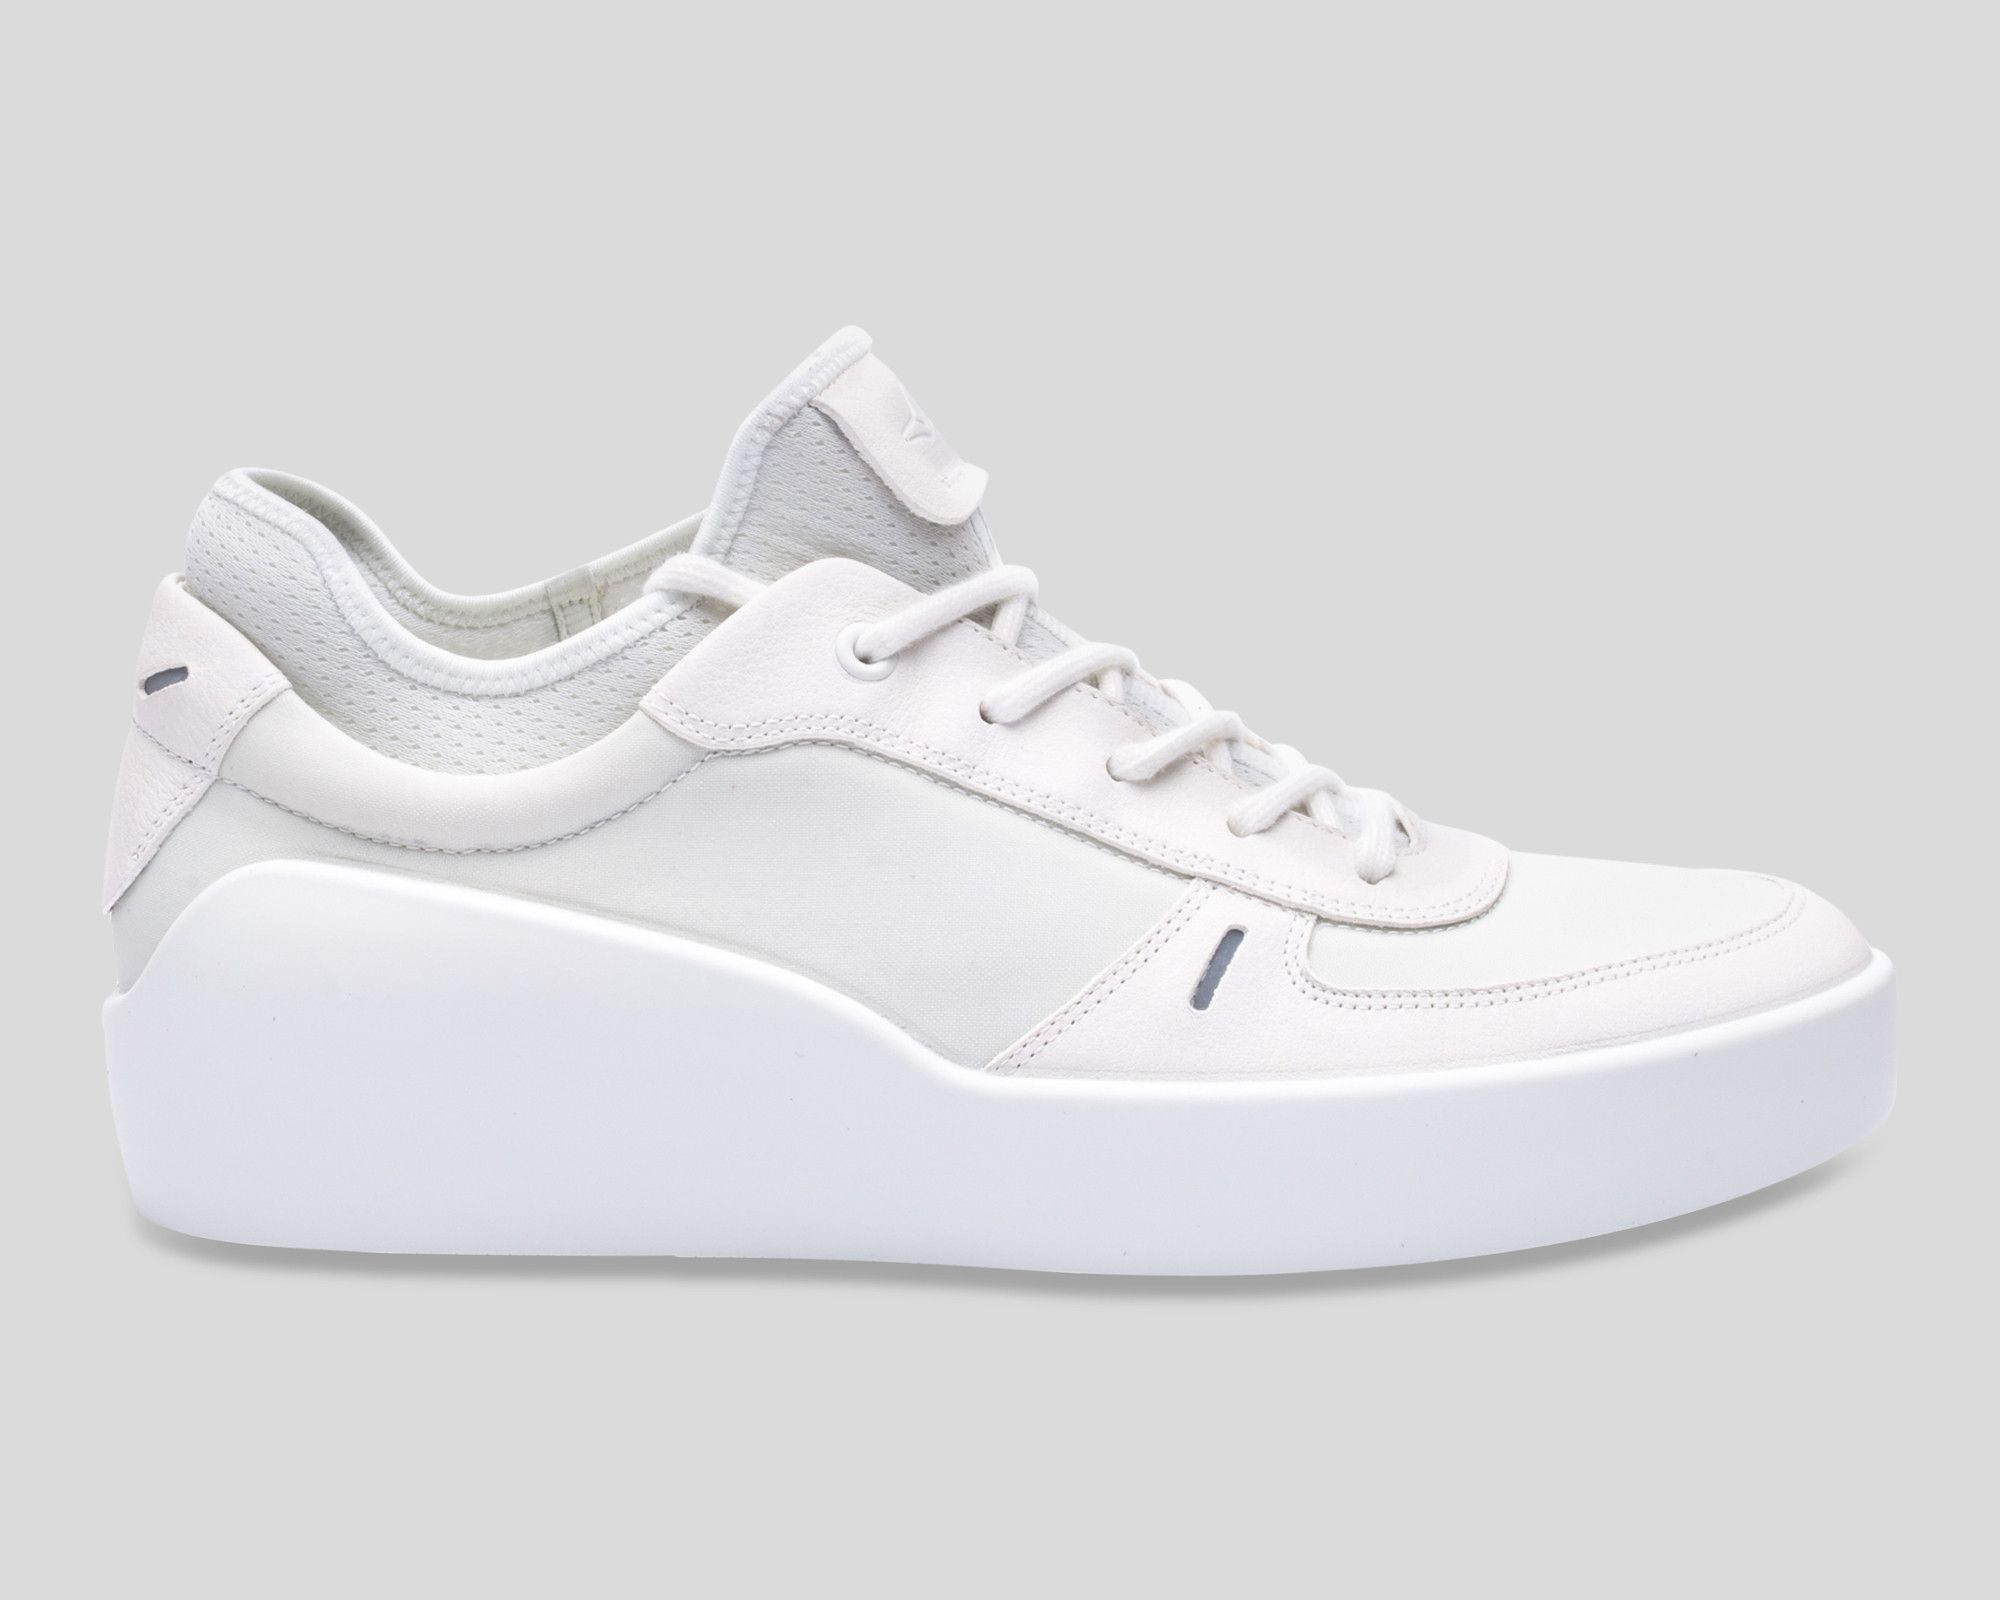 ecco kyle sneaker 2014 Sale,up to 65